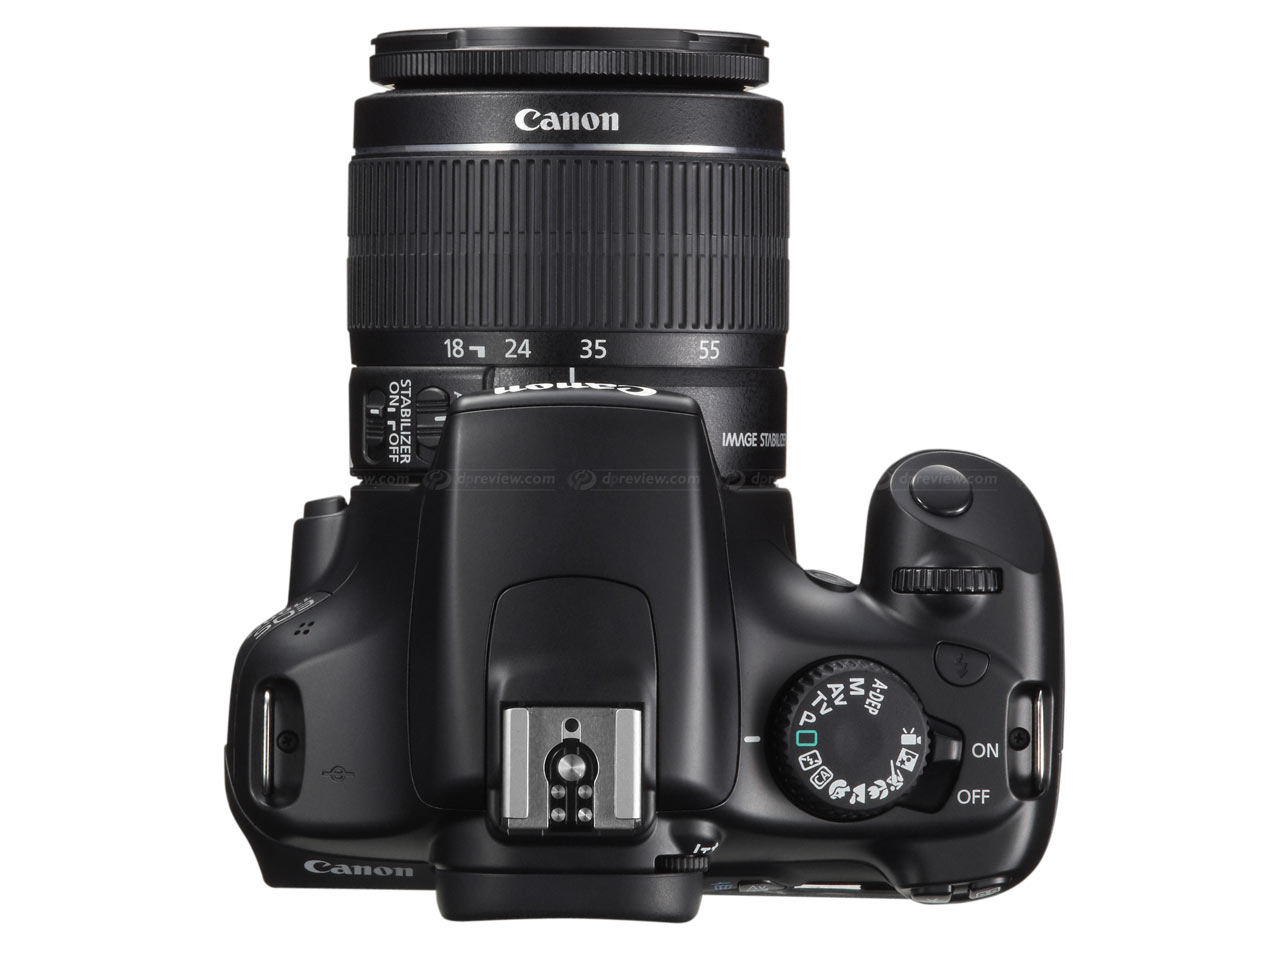 Canon Rebel T3 / EOS 1100D announced and previewed: Digital Photography Review